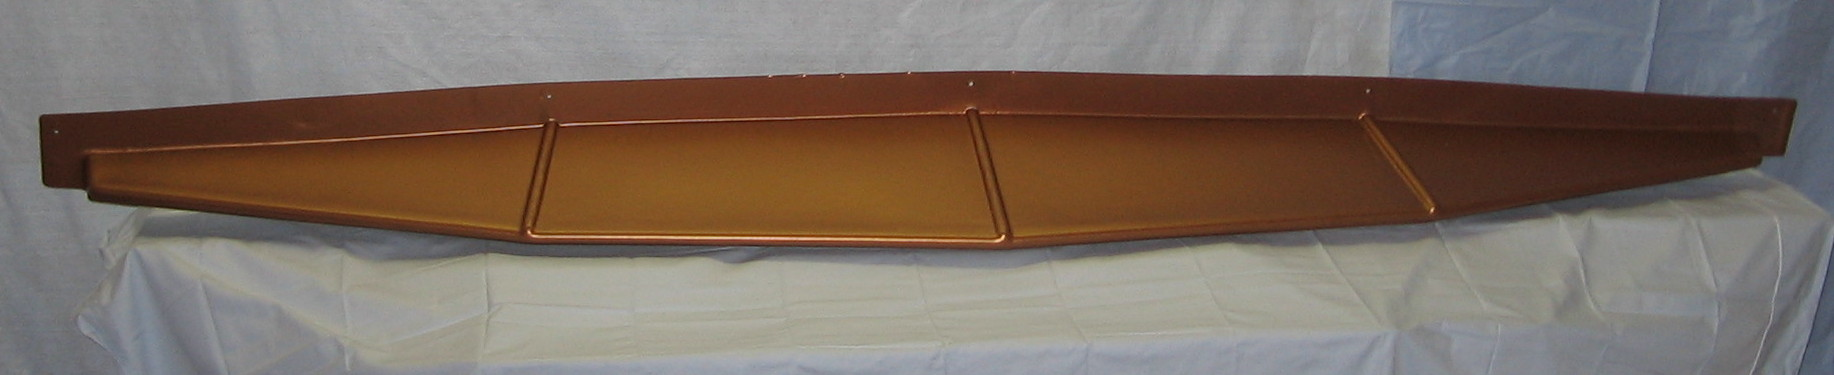 roofs for andersen casement bow windows bow window roof ghi home copper roofing 171 cbs philly